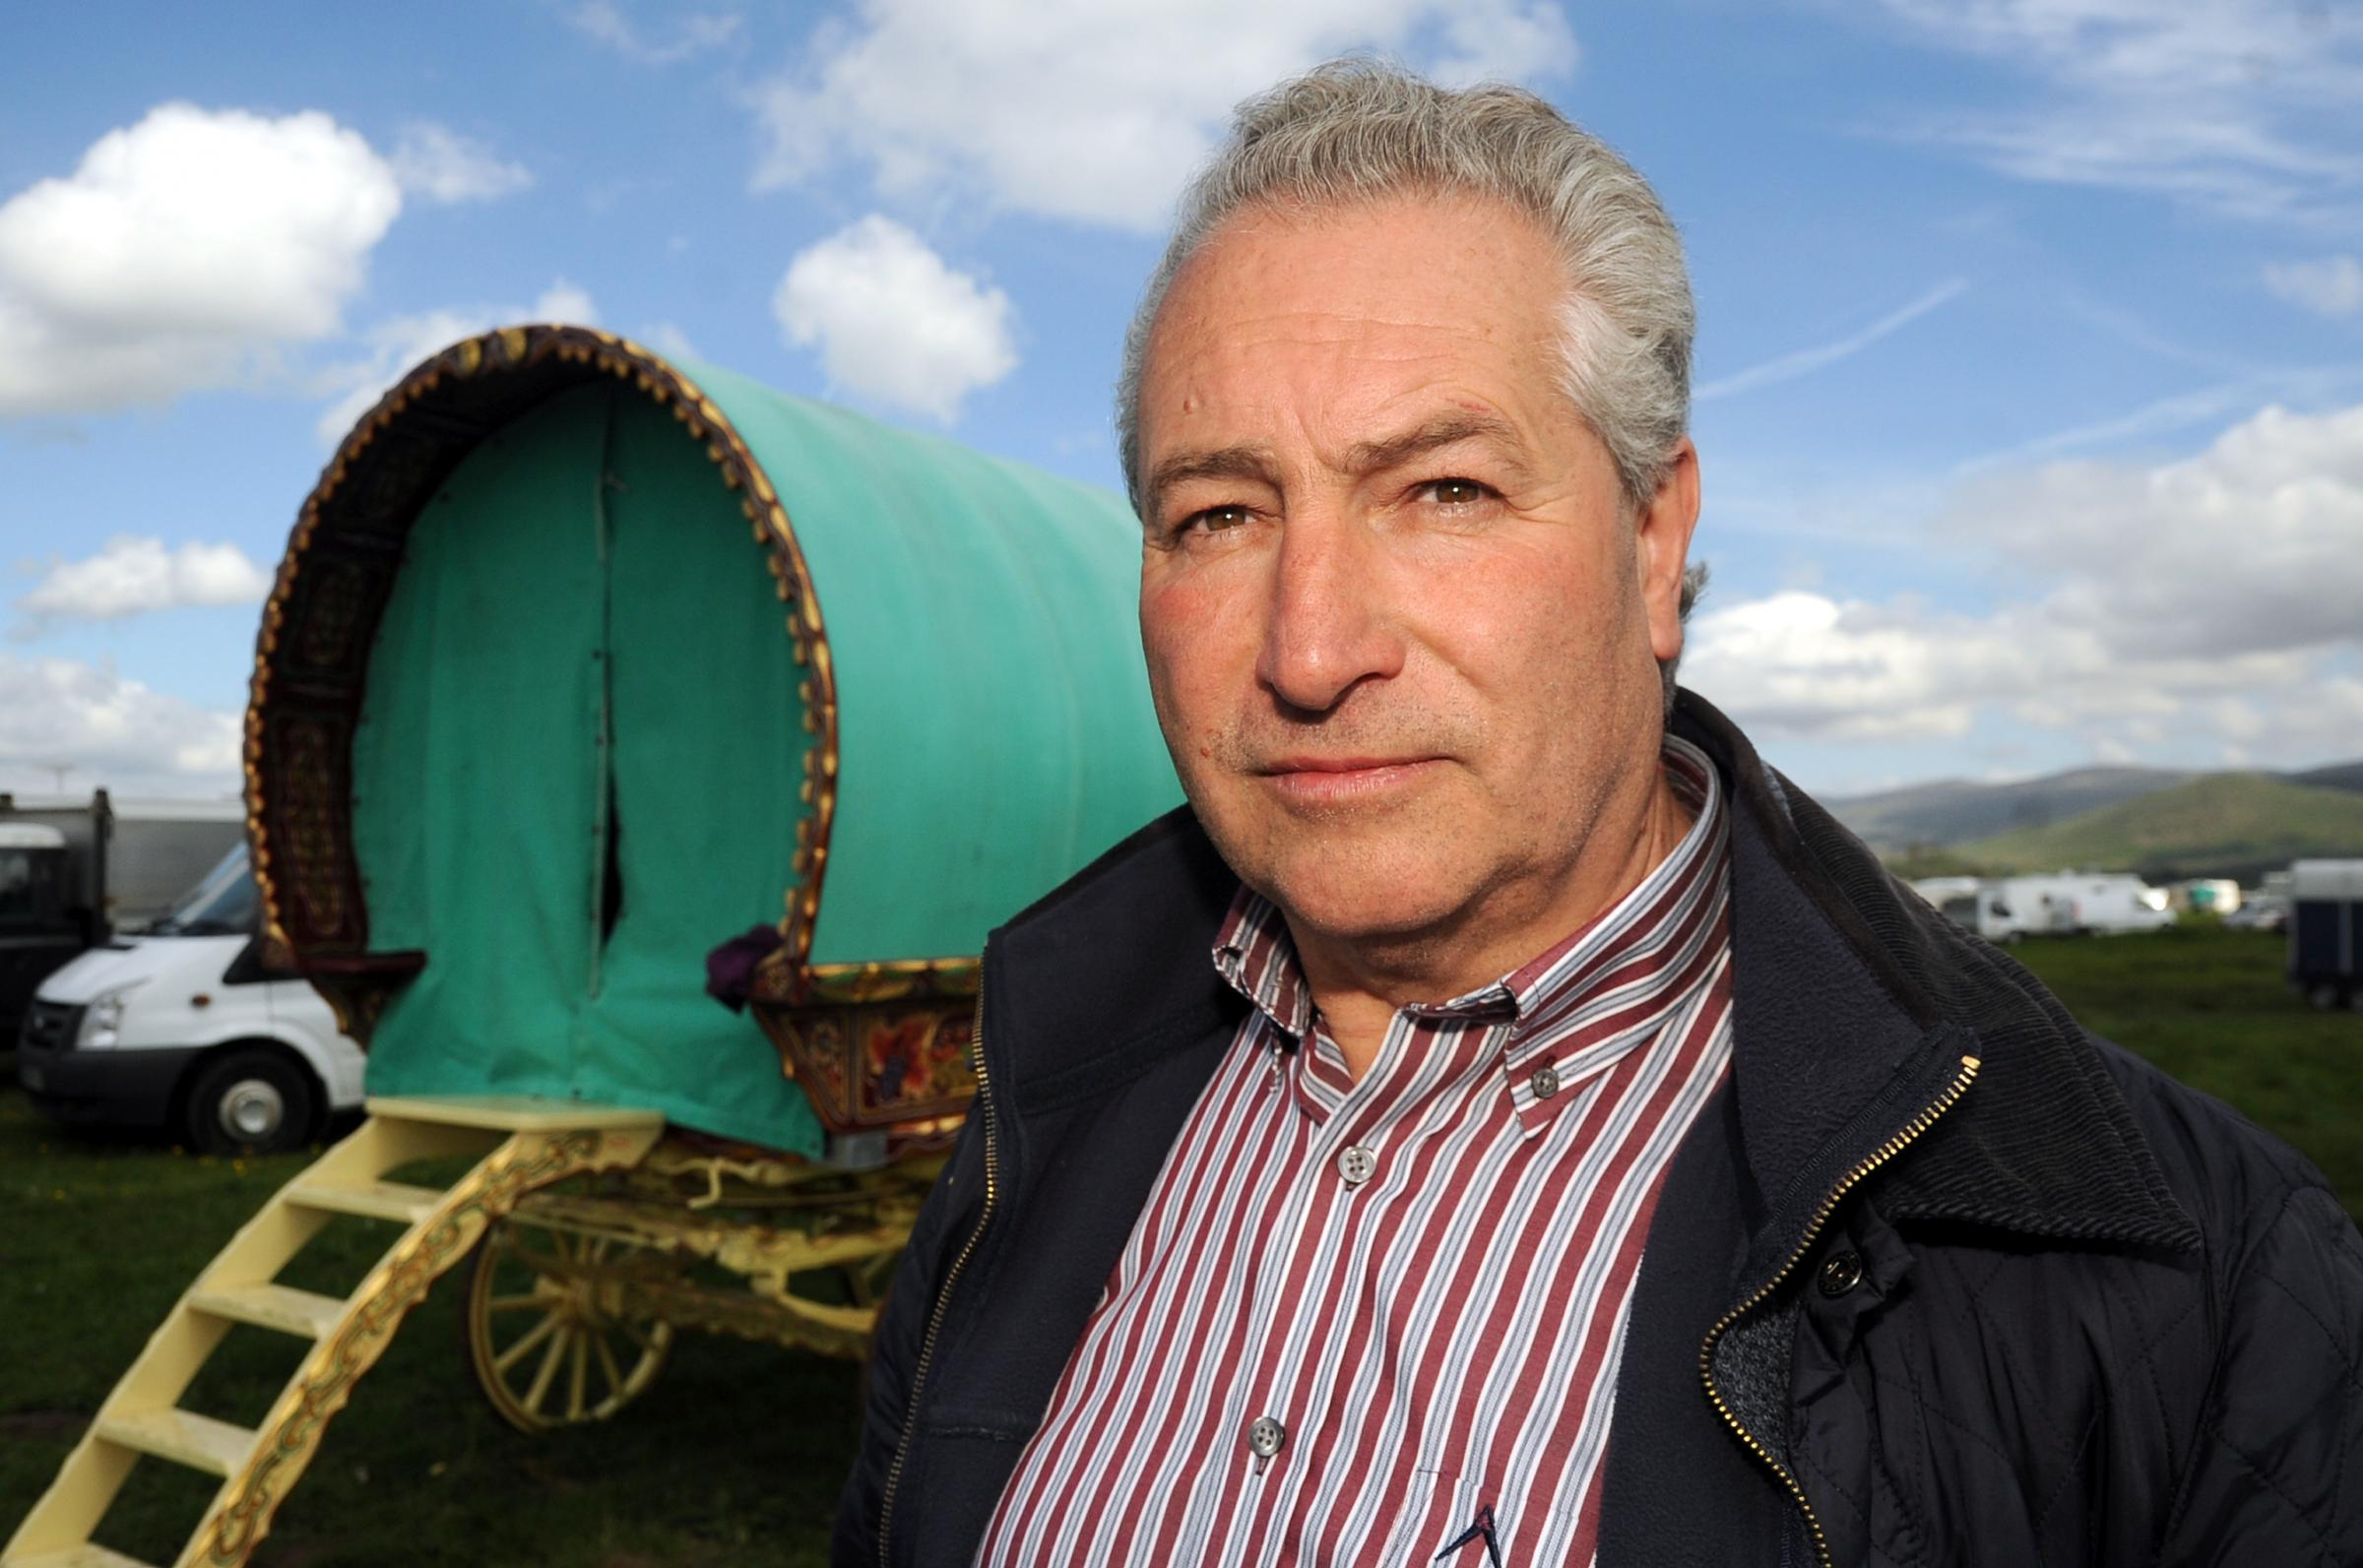 PREPARATIONS: Gypsy and organiser Billy Welch is encouraging Gypsies and Travellers not to arrive at the fair too early